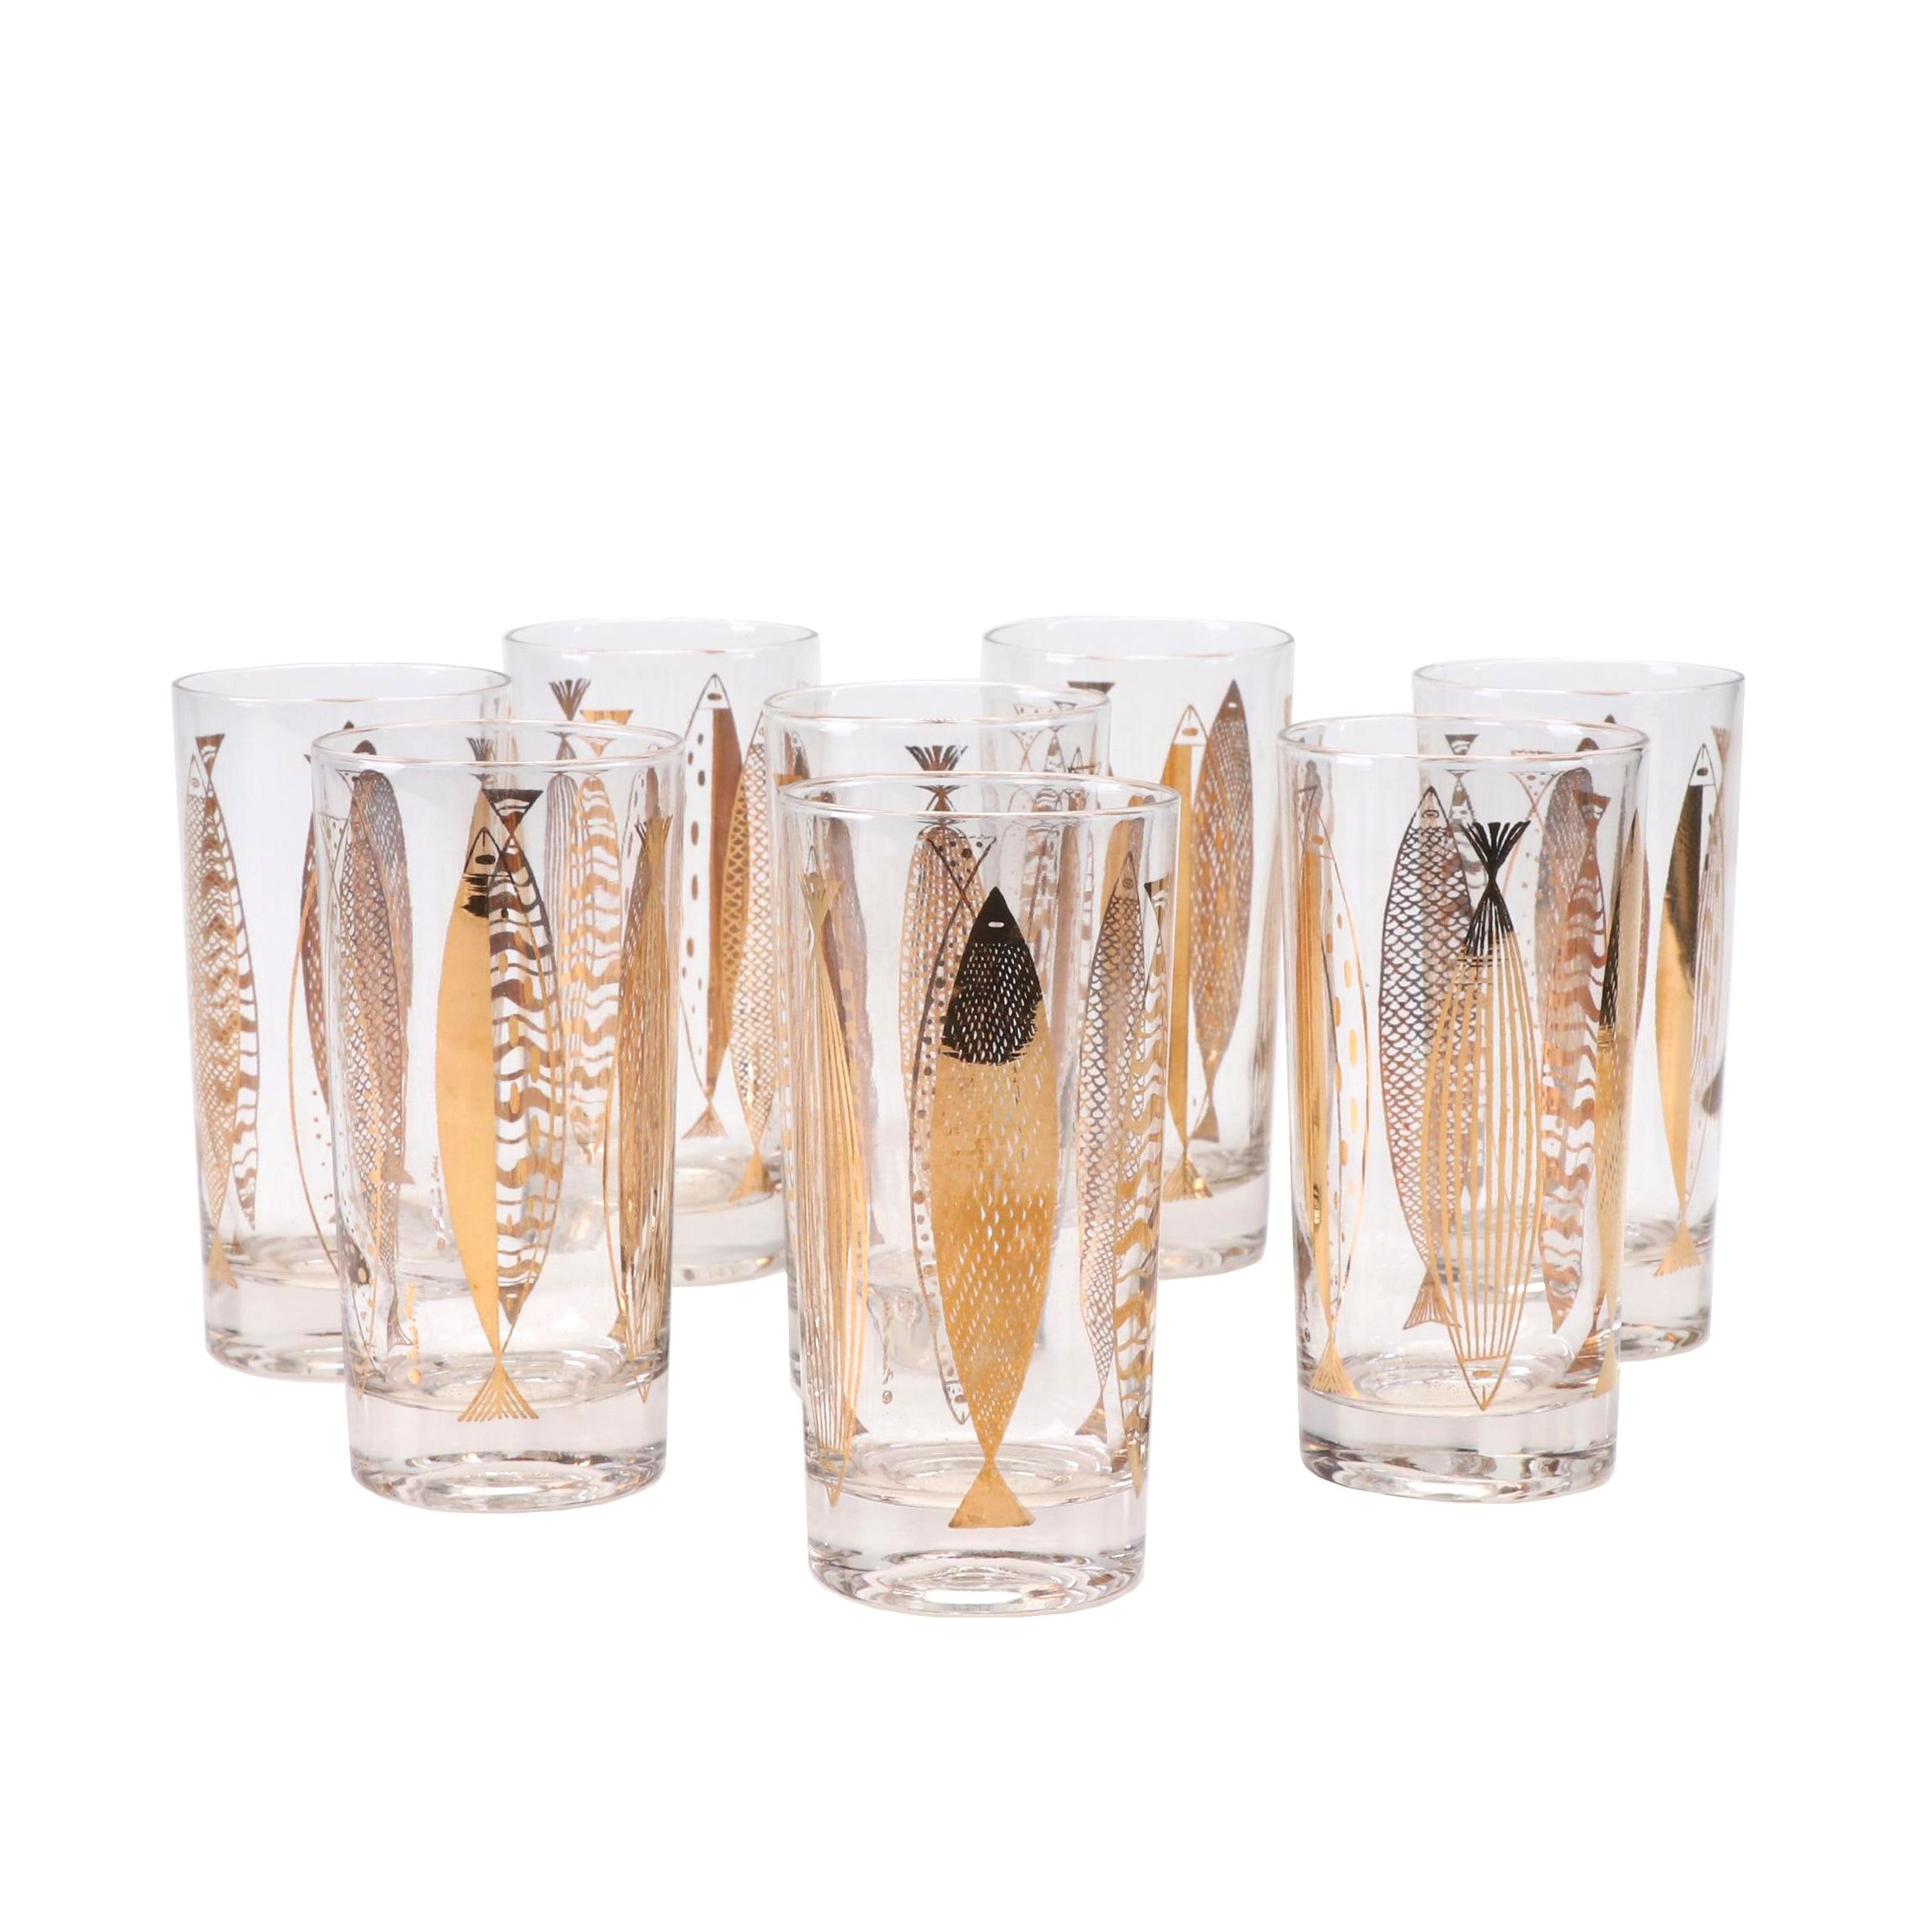 Fred Press Mid Century Modern Highball Glasses, Set of 8